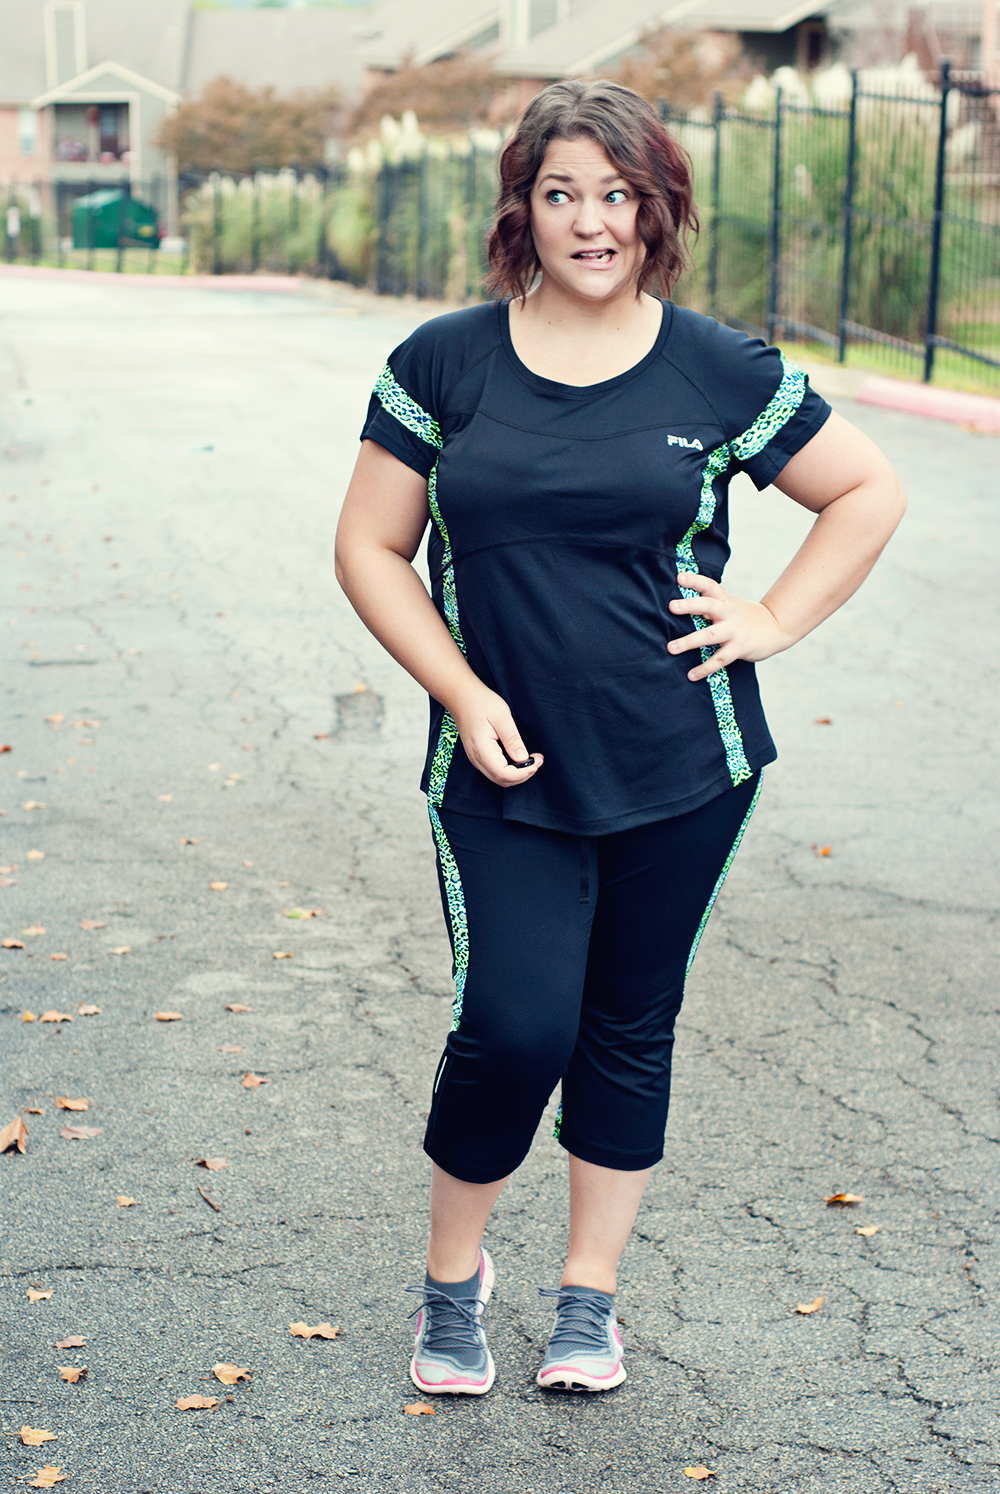 Fashionably Fit Tips With A Family